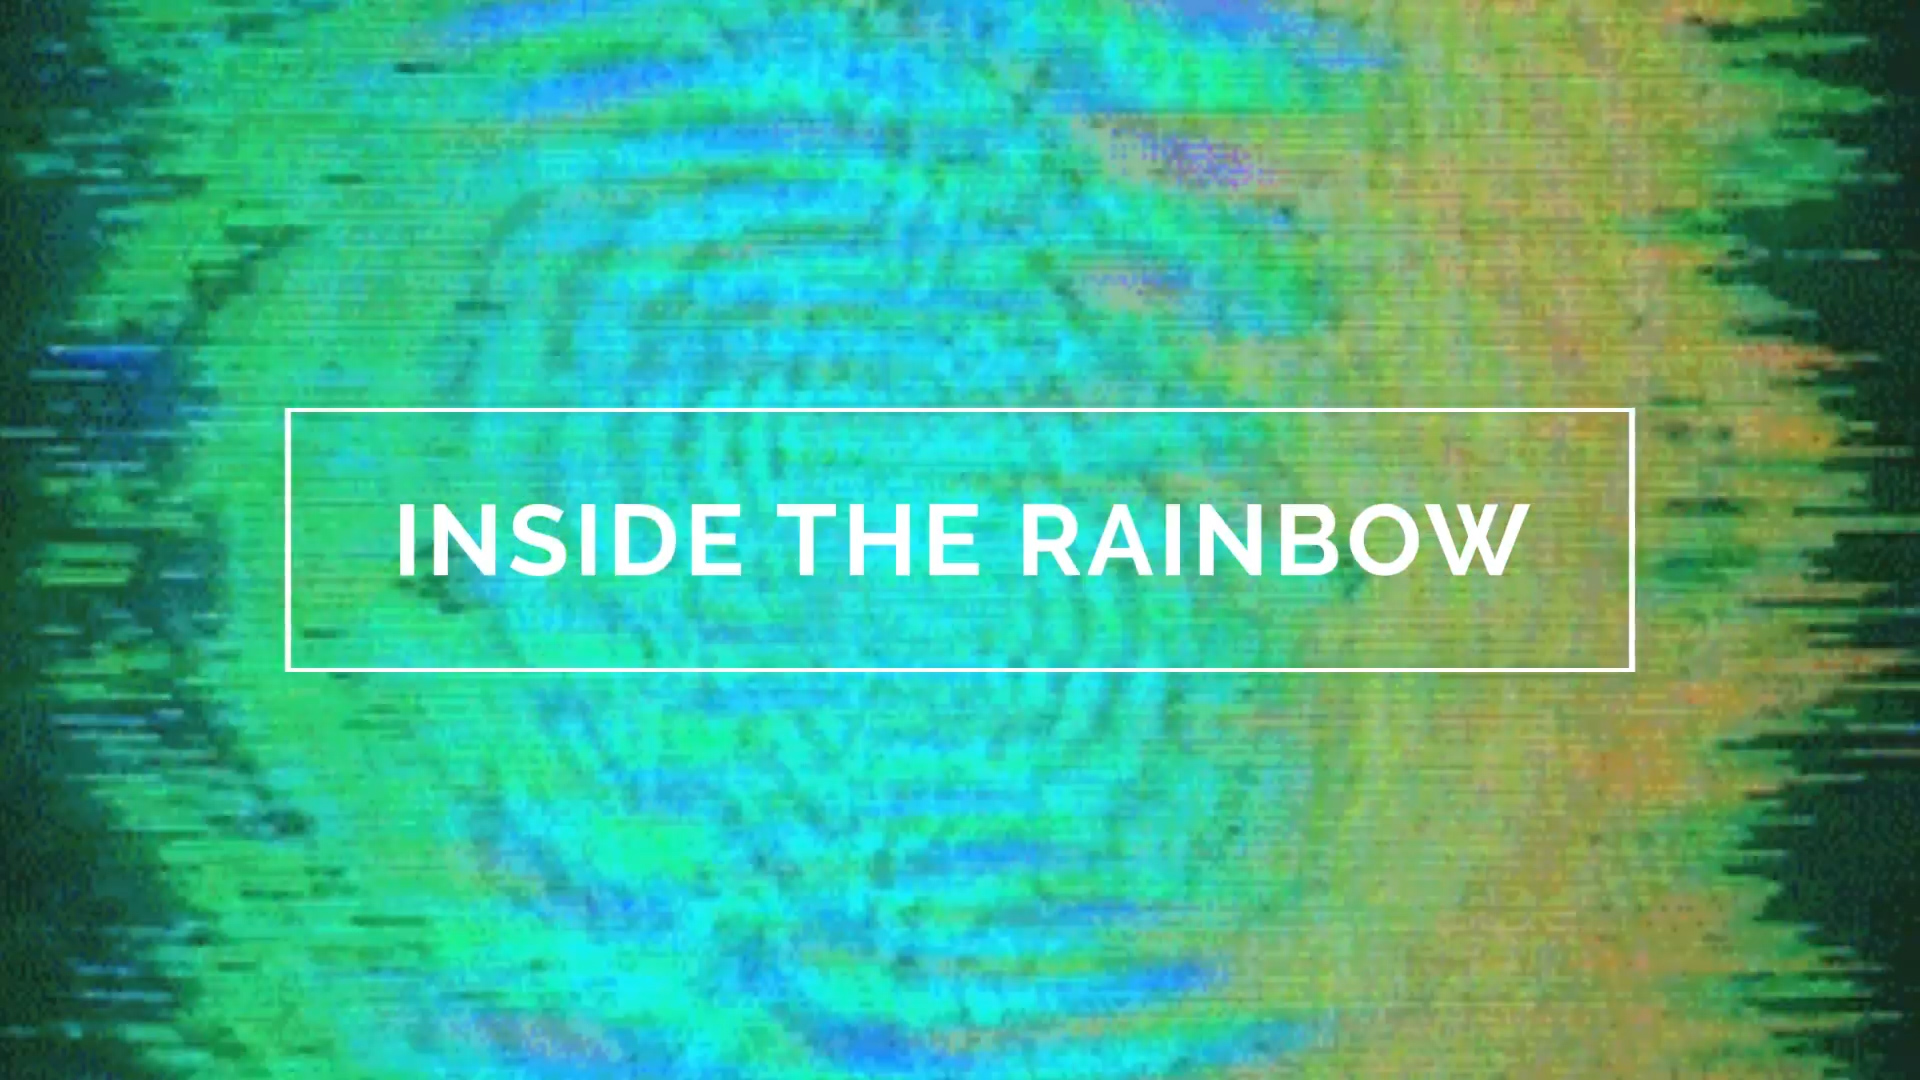 Inside the Rainbow.jpg